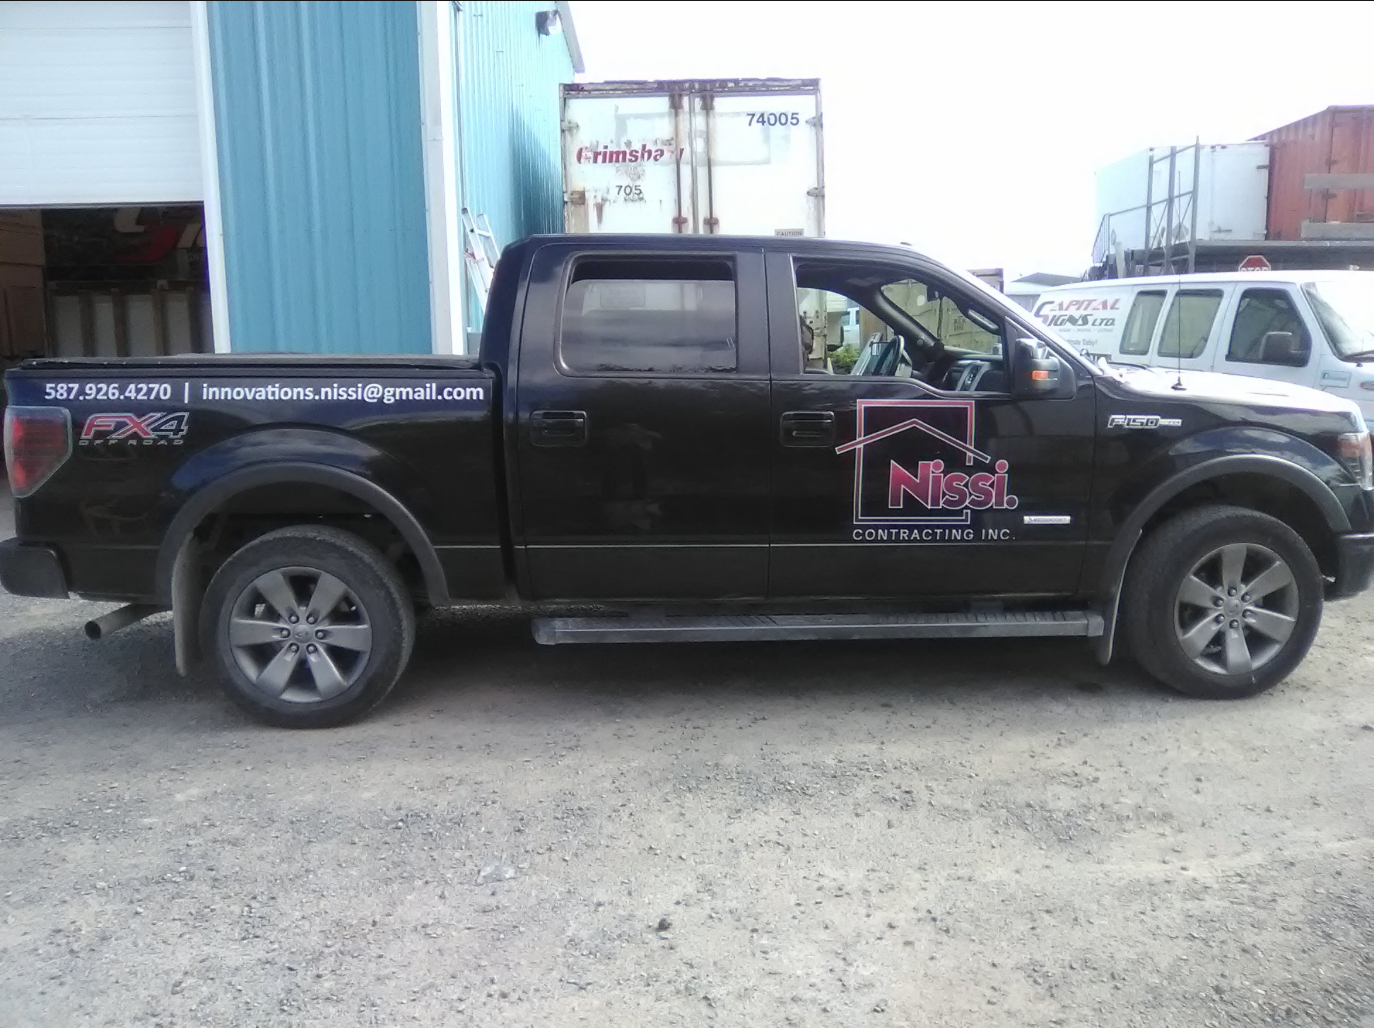 Nissi Contracting Inc. Commercial Fleet Decals